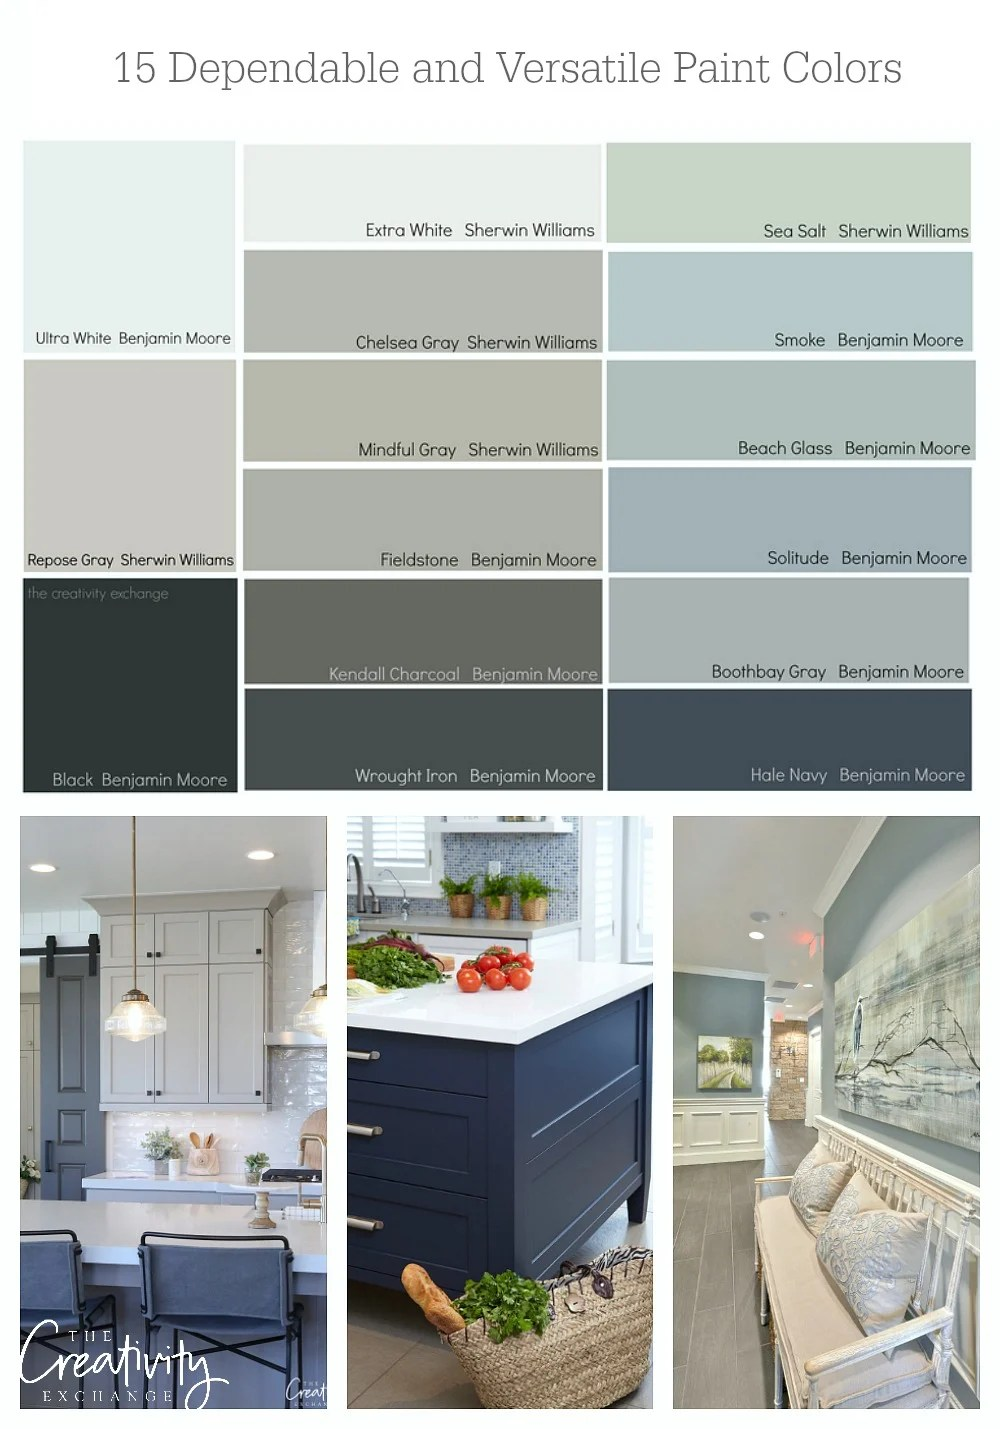 Benjamin Moore Bedroom Colors 15 Of The Most Versatile And Dependable Paint Colors All Star List